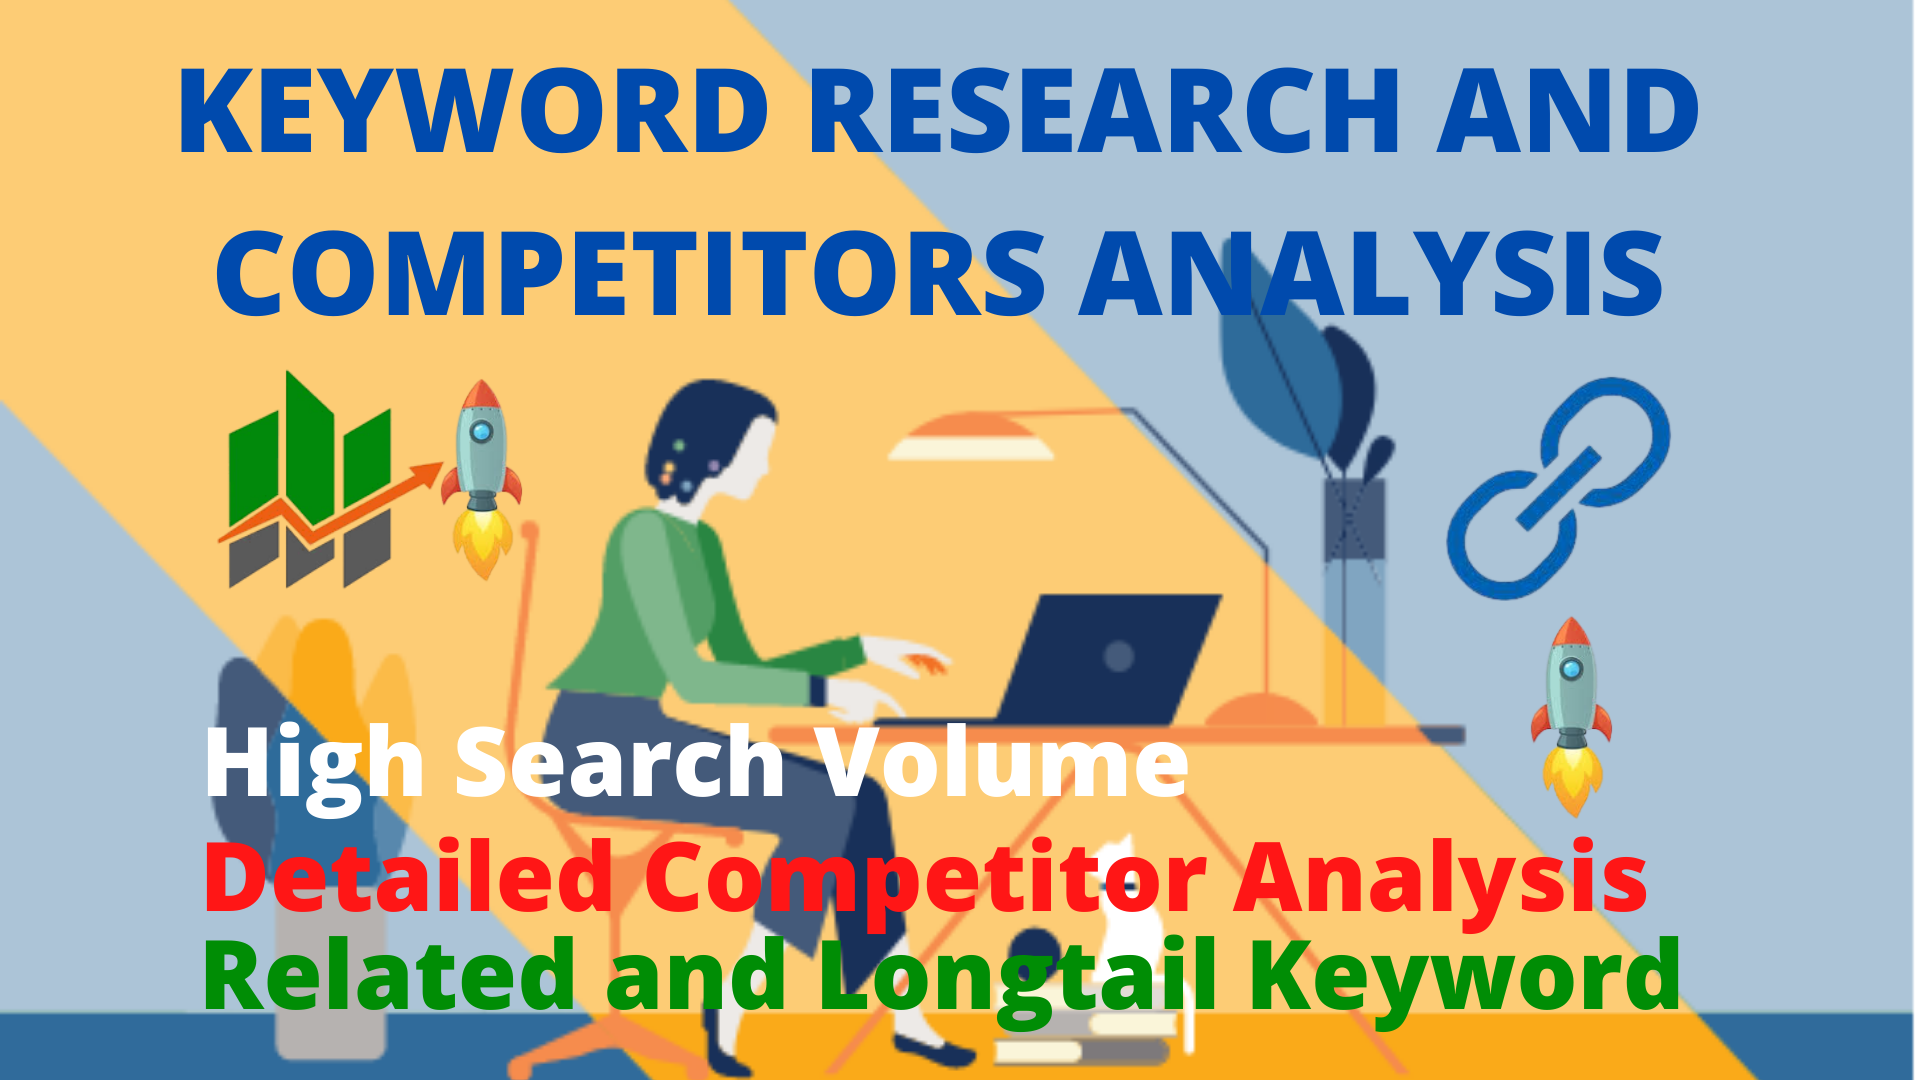 Long tail keyword research and competitor analysis